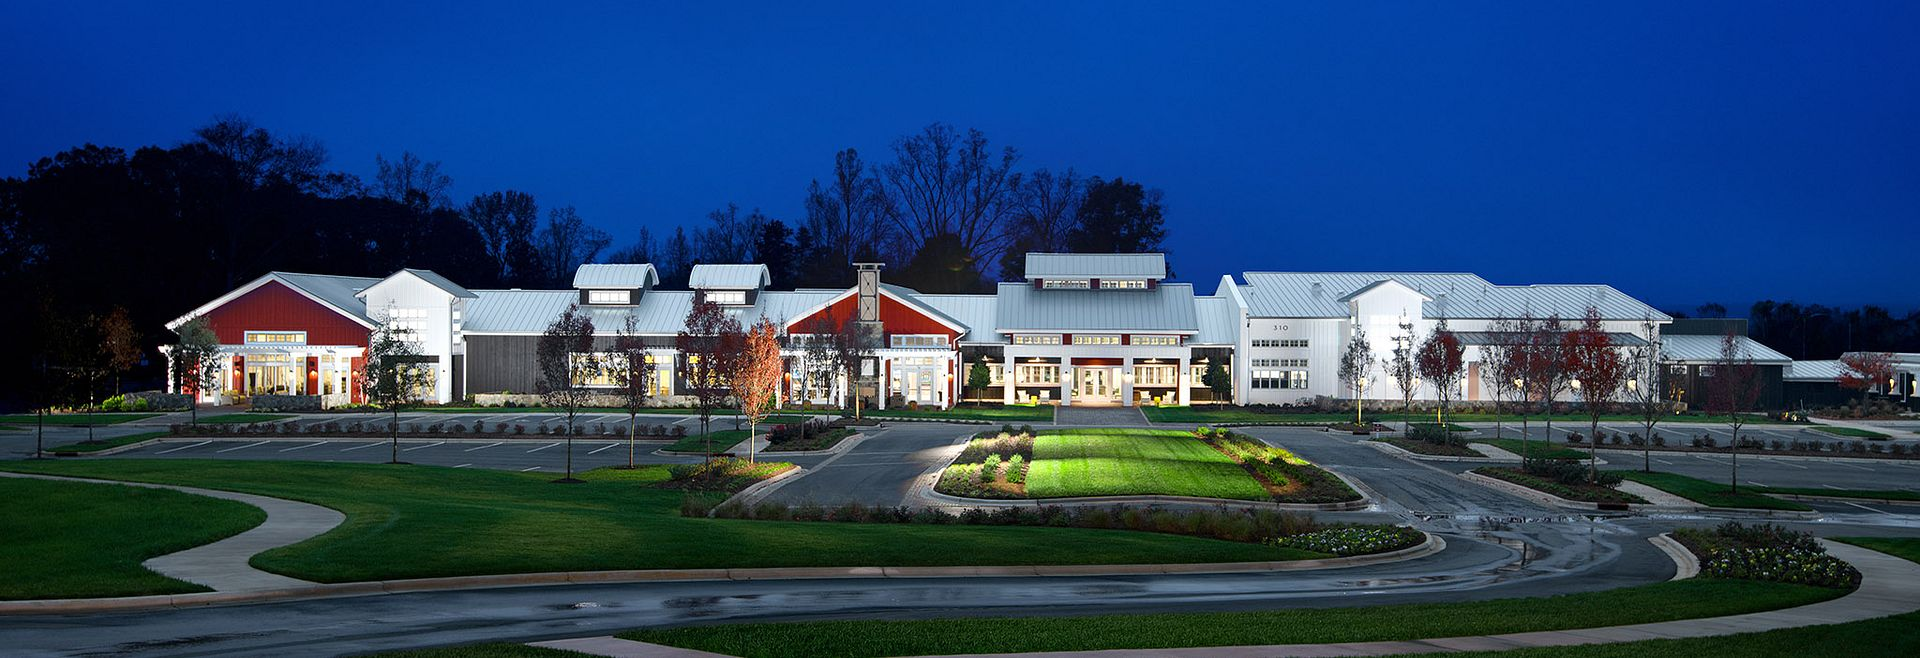 Trilogy at Lake Norman Twin Mills Club Building Exterior